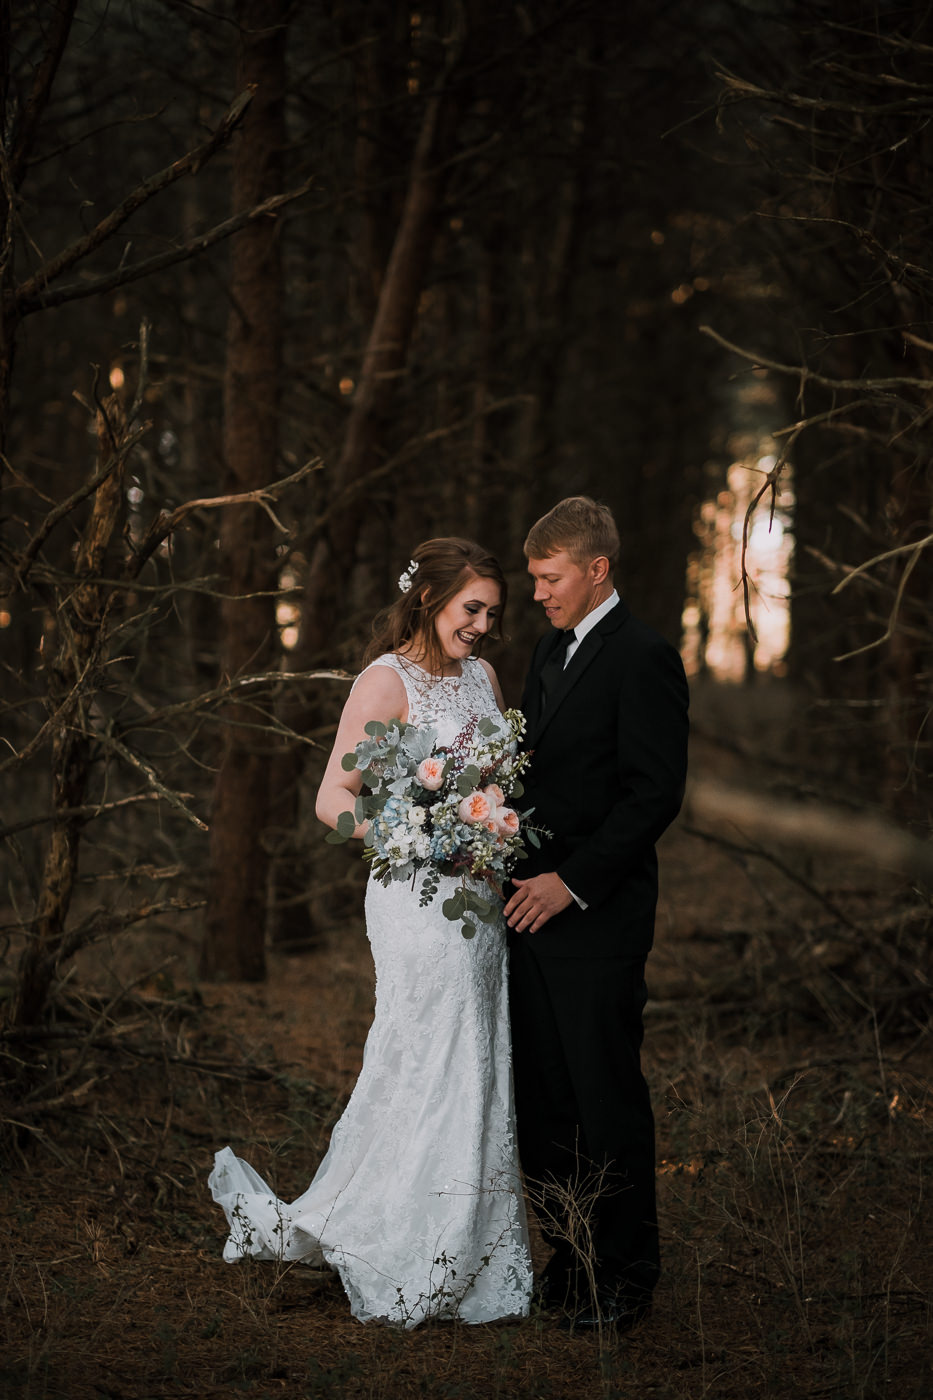 rogers.arkansas.weddingphotos.©2018mileswittboyer-14.jpg